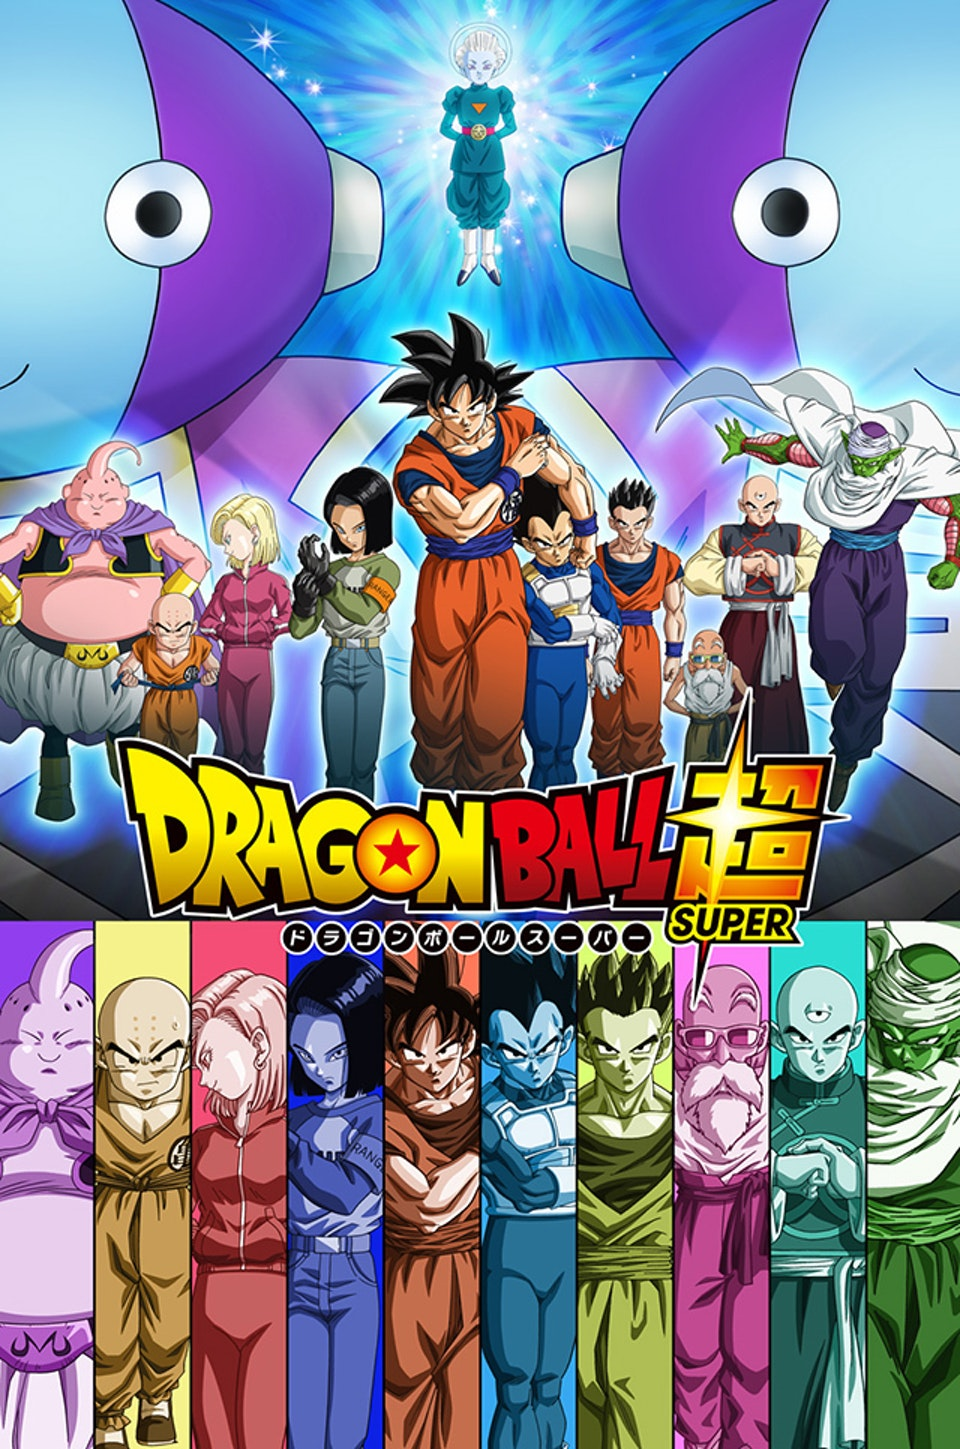 dragon-ball-super.jpeg?dpr=1.5&auto=form